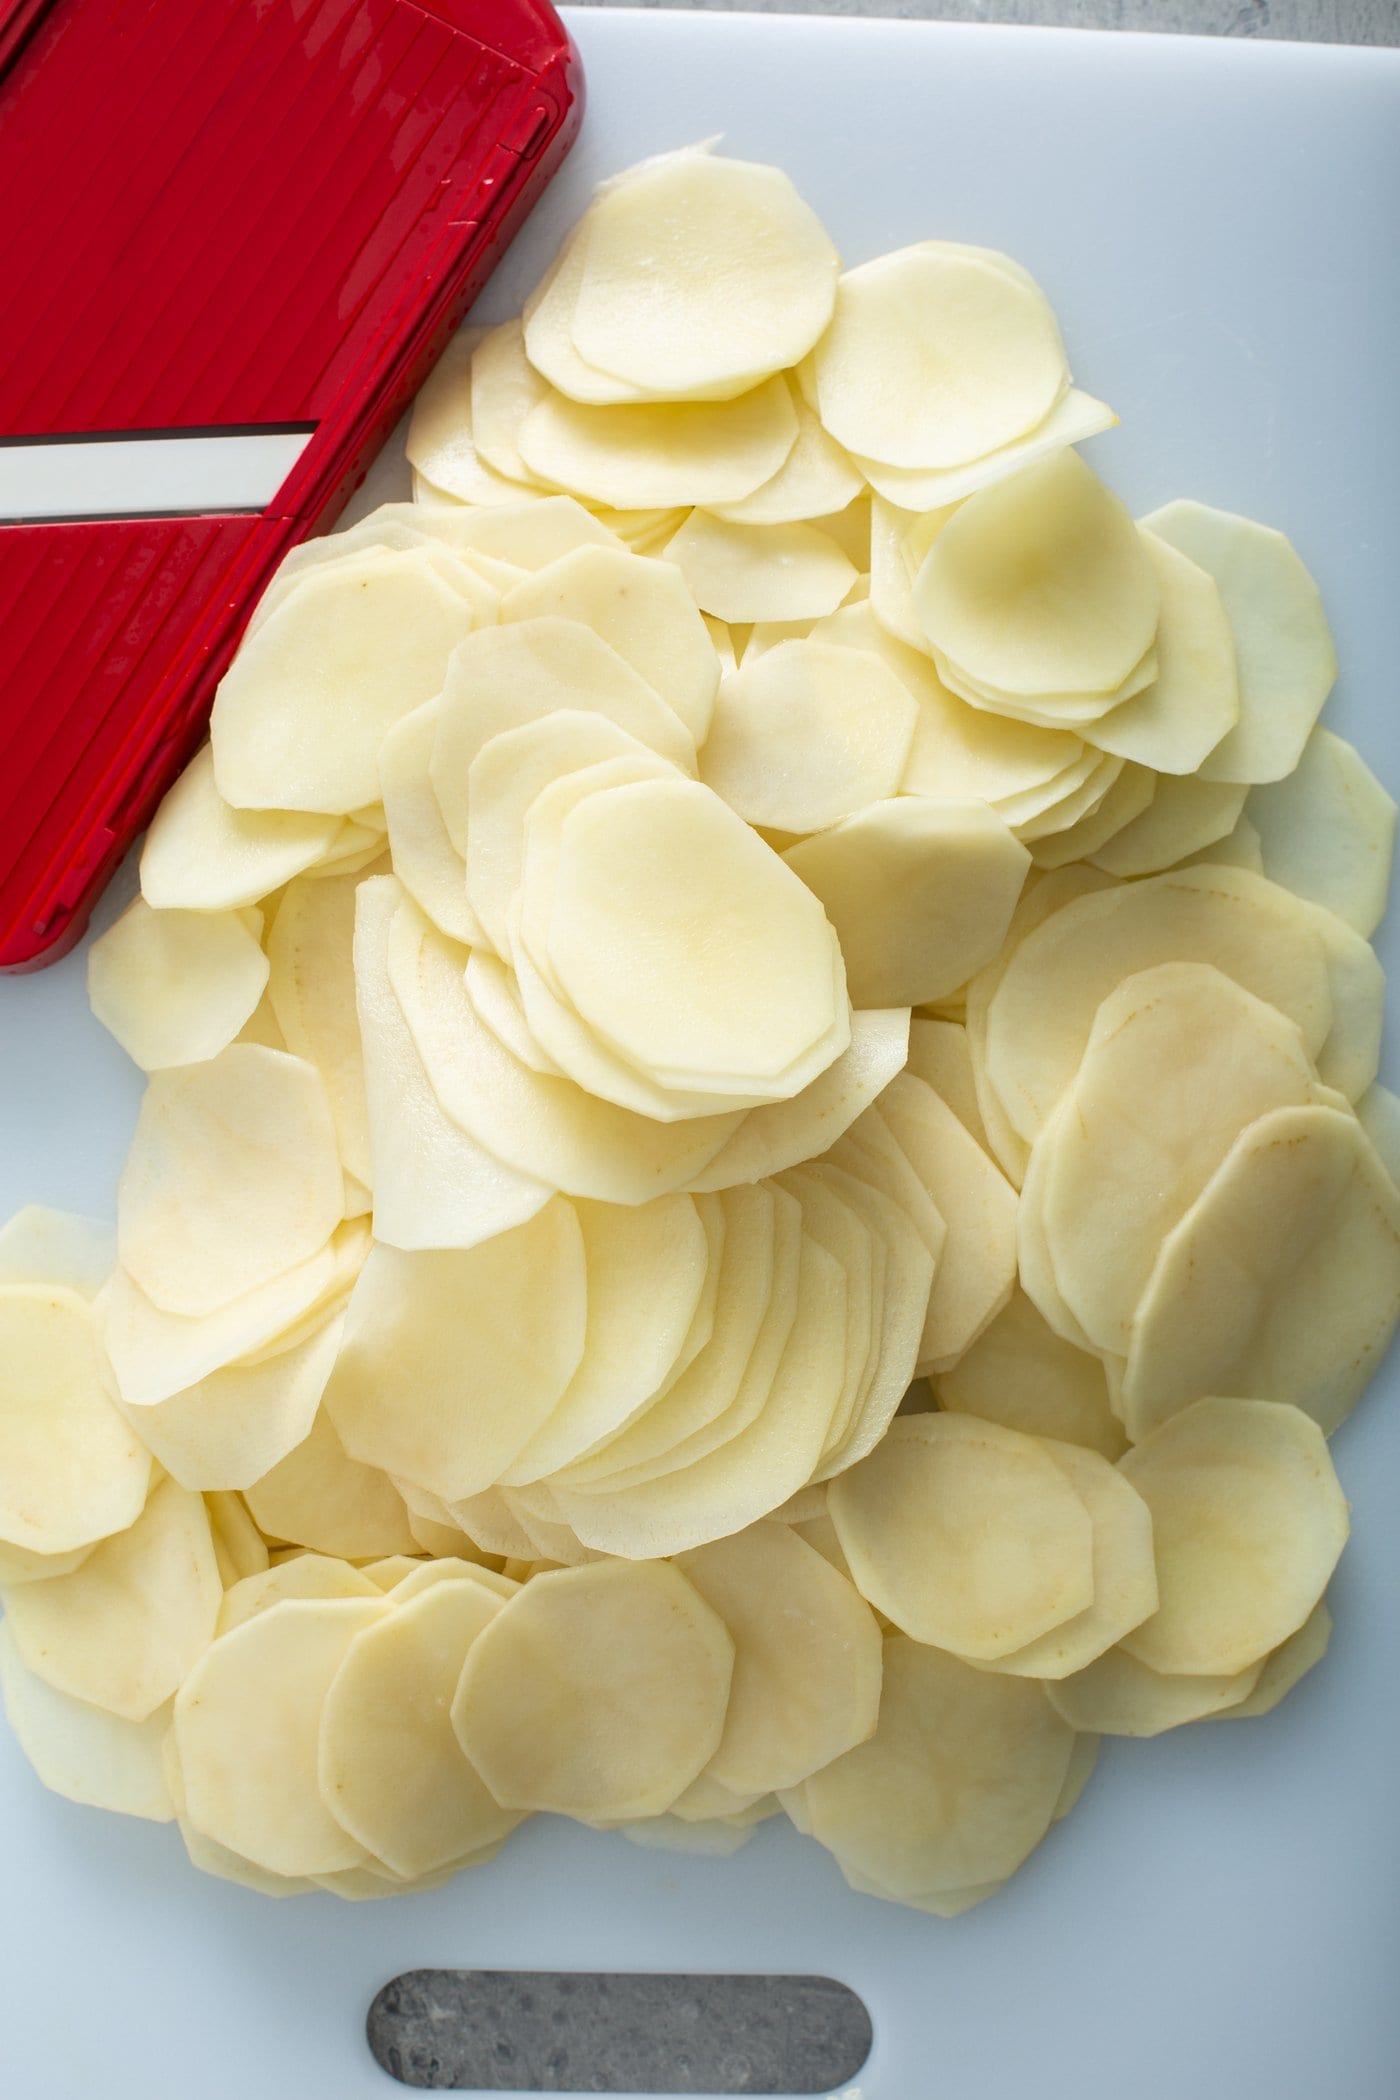 Raw, peeled, sliced potatoes with a red and white kitchen towel in the background.